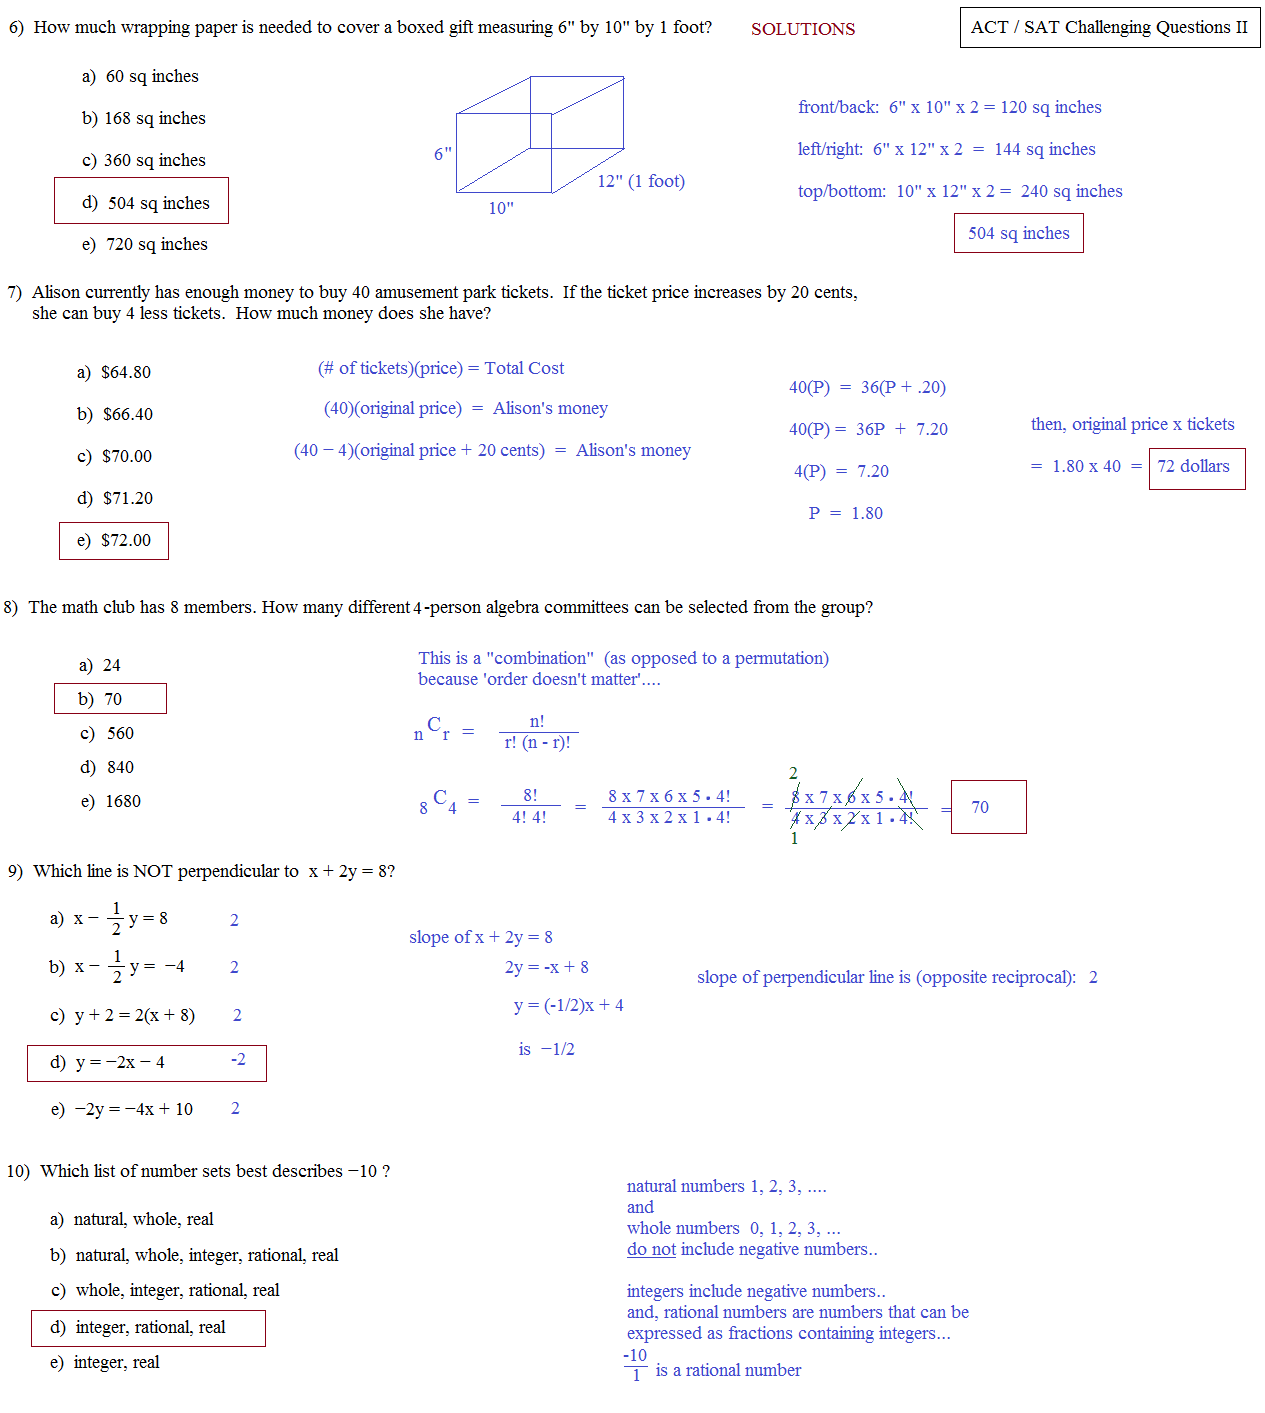 sat math test level 2 guide filetype pdf